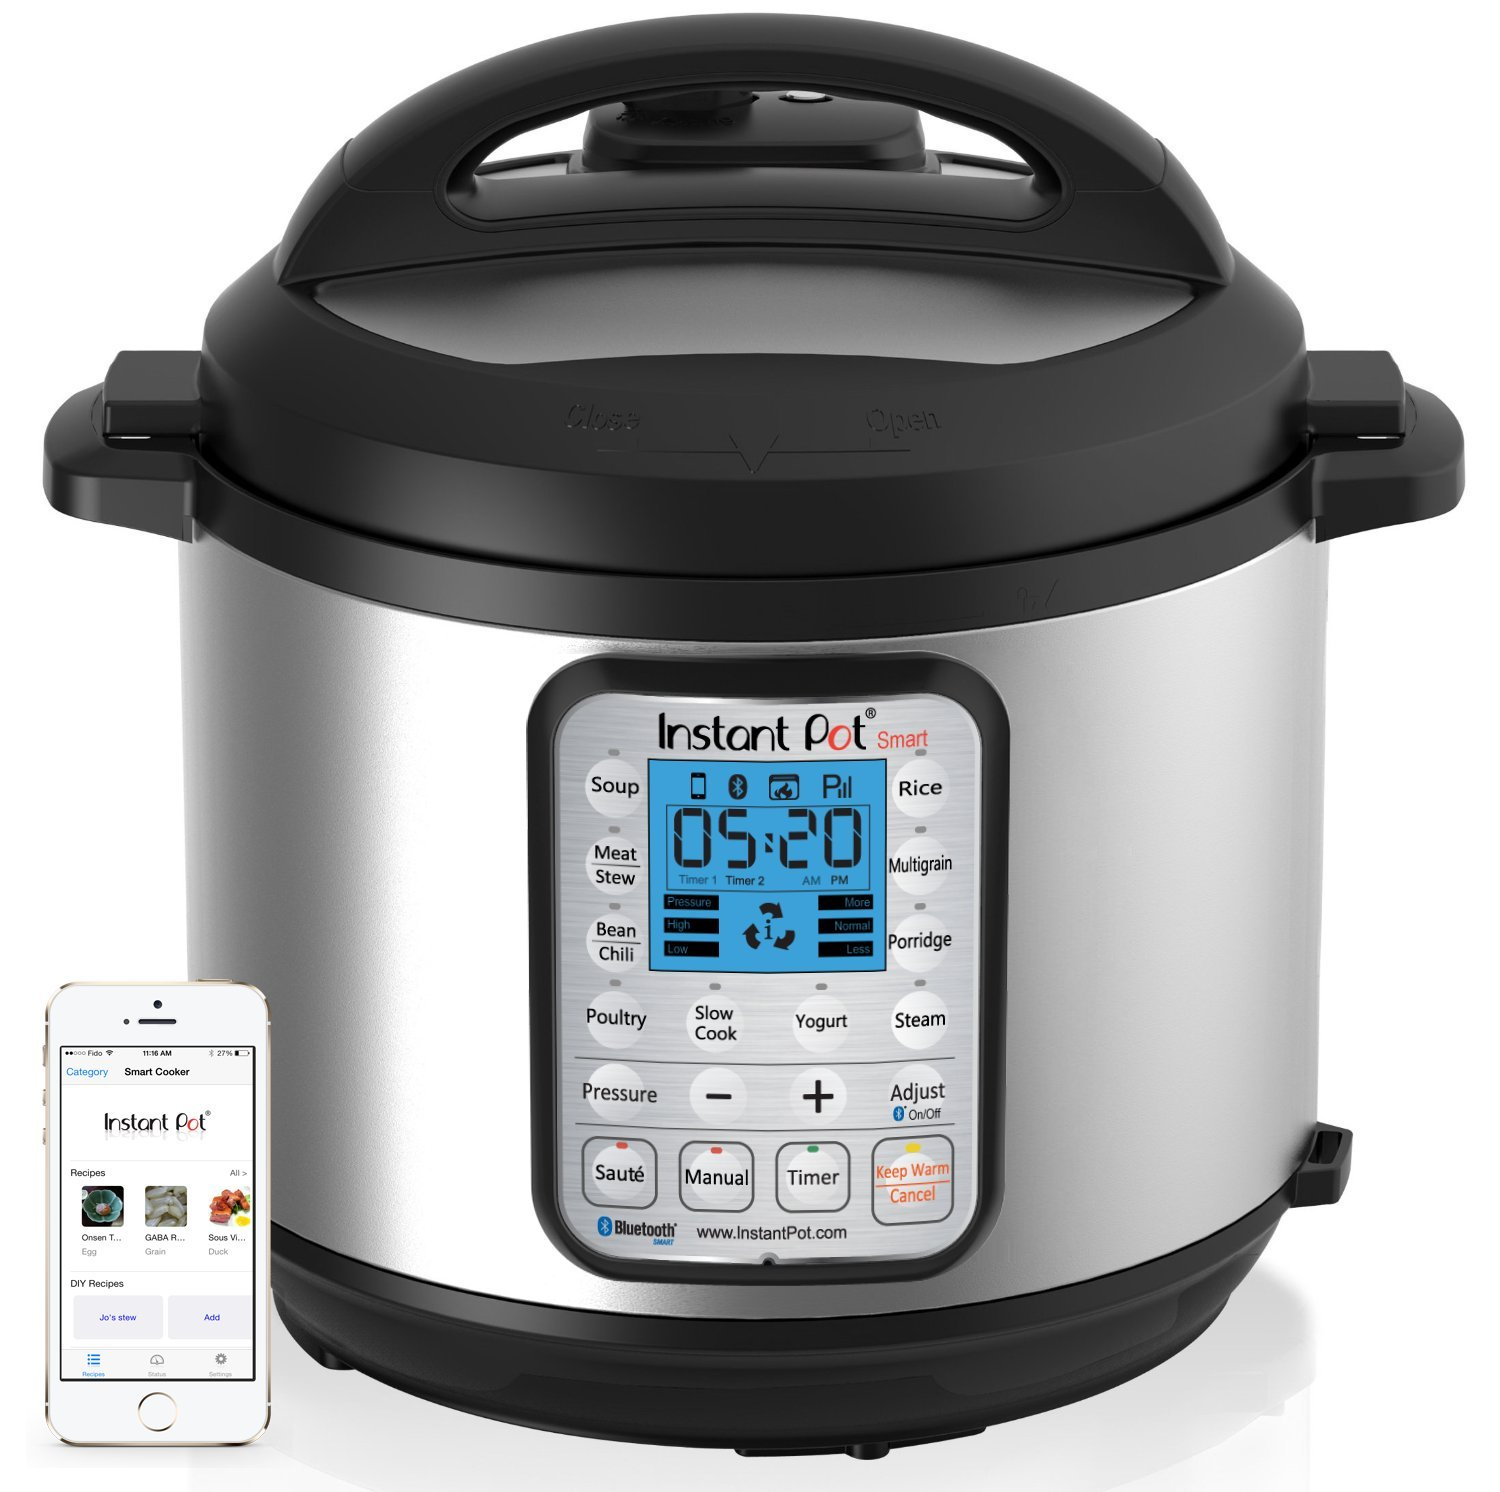 Instant Pot Smart Bluetooth 6 Qt 7-in-1 Multi-Use Programmable Pressure Cooker, Slow Cooker, Rice Cooker, Yogurt Maker, Sauté, Steamer, and Warmer (Product Discontinued) product image